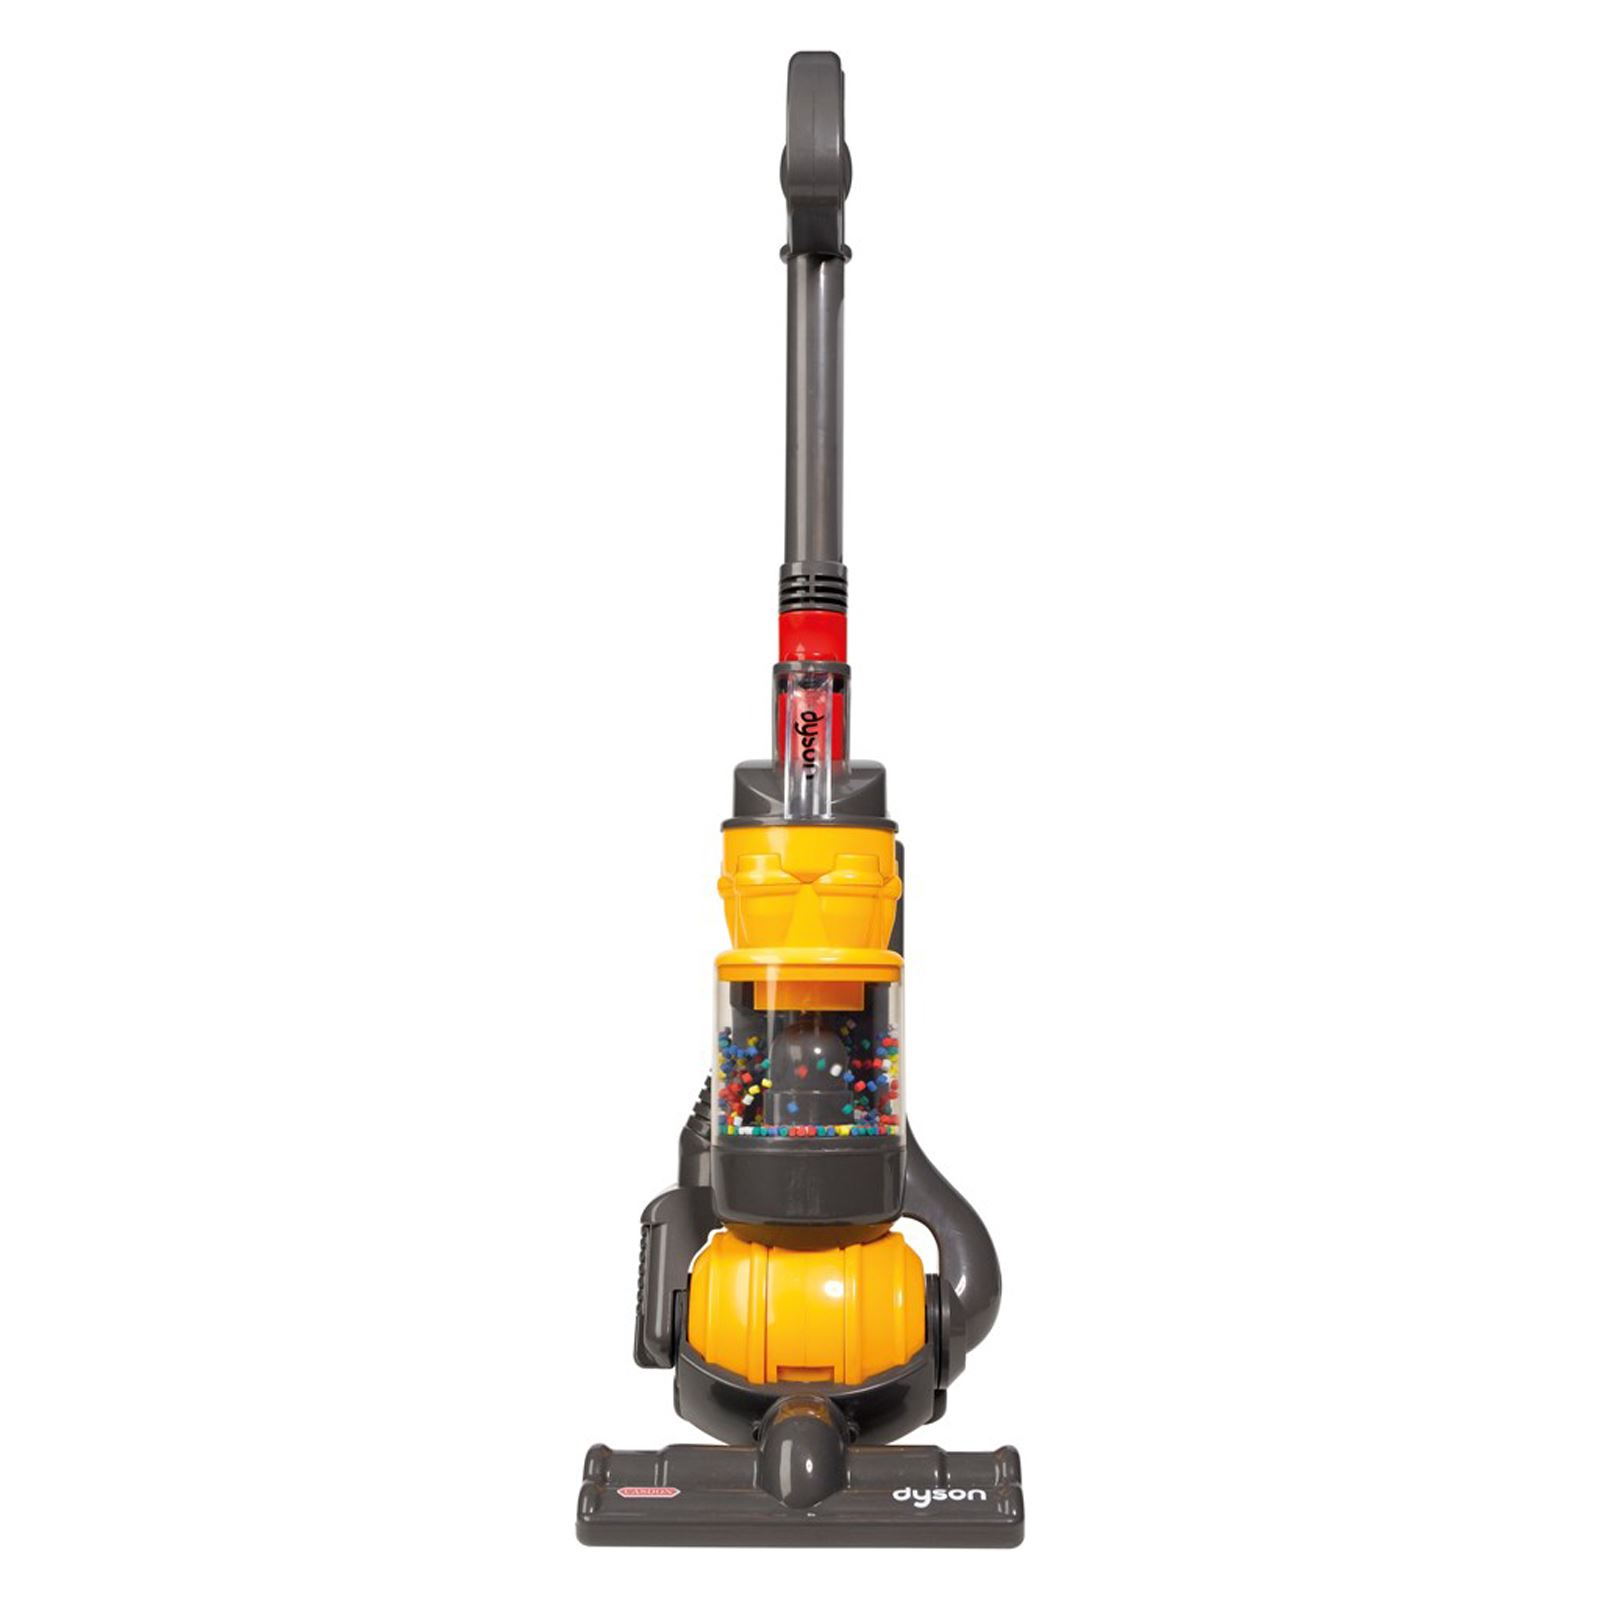 Dyson Toy Vacuum Bed Bath And Beyond